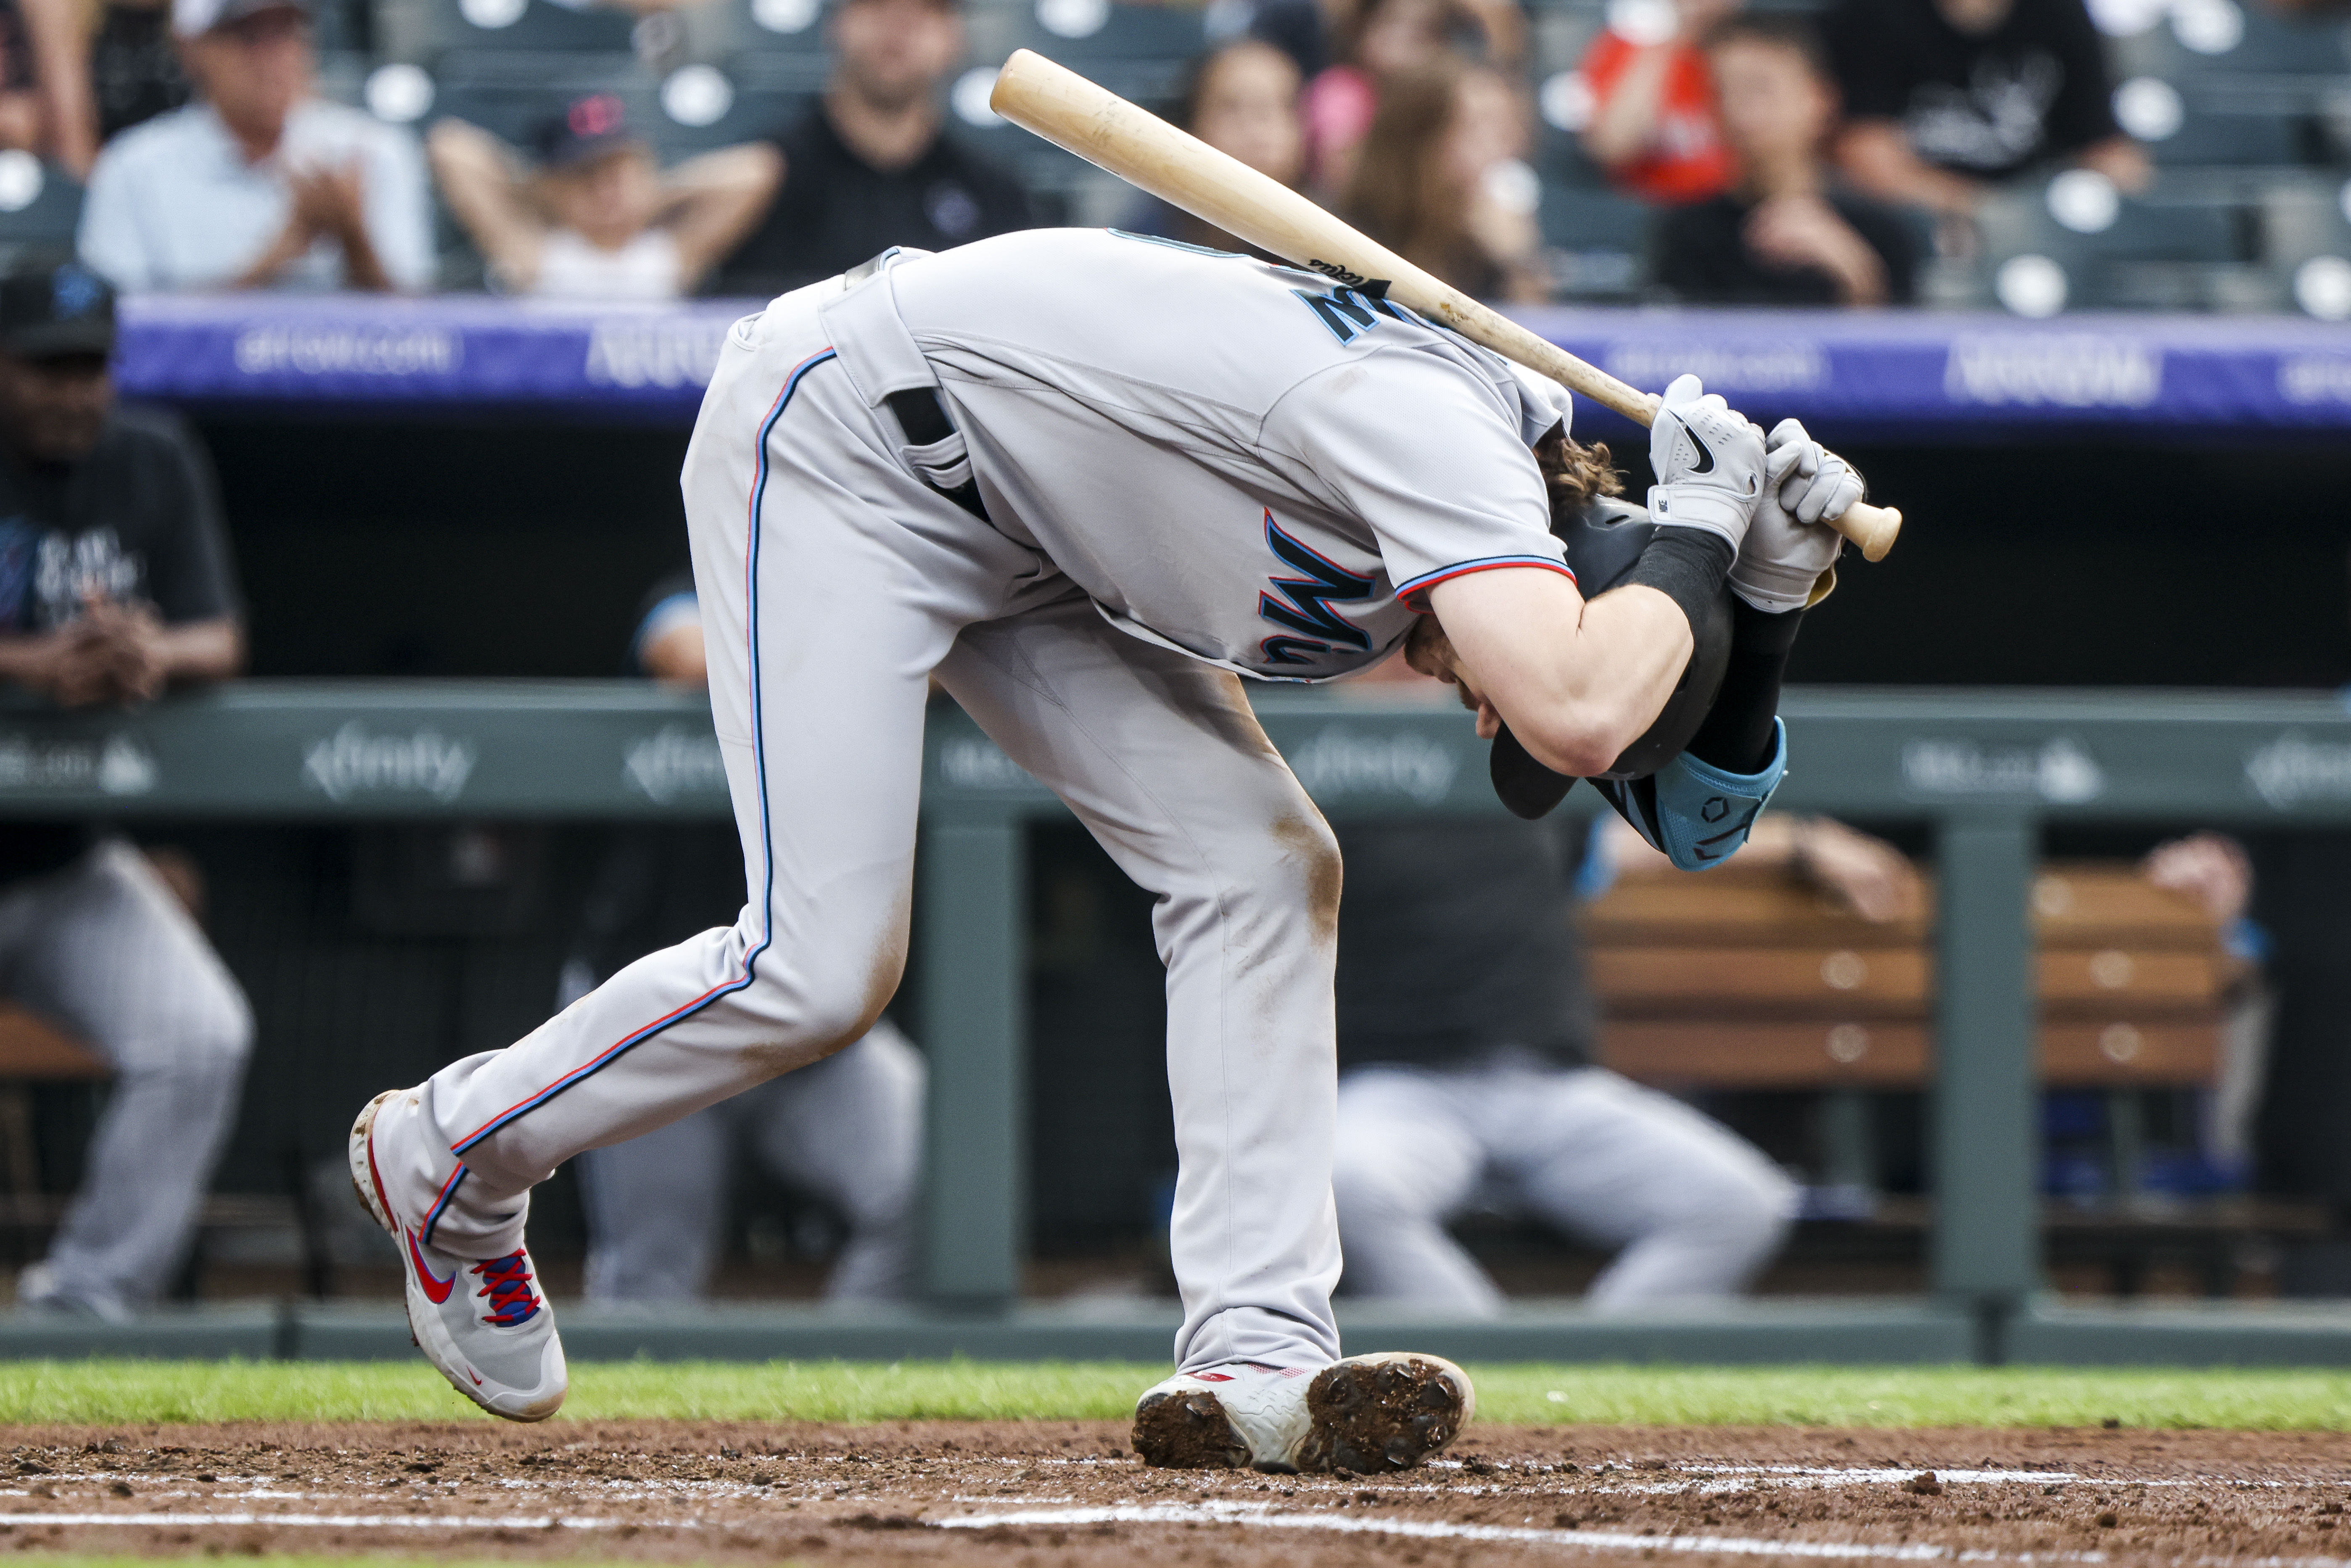 Miami Marlins third baseman Brian Anderson (15) reacts after striking out against the Colorado Rockies in the third inning at Coors Field